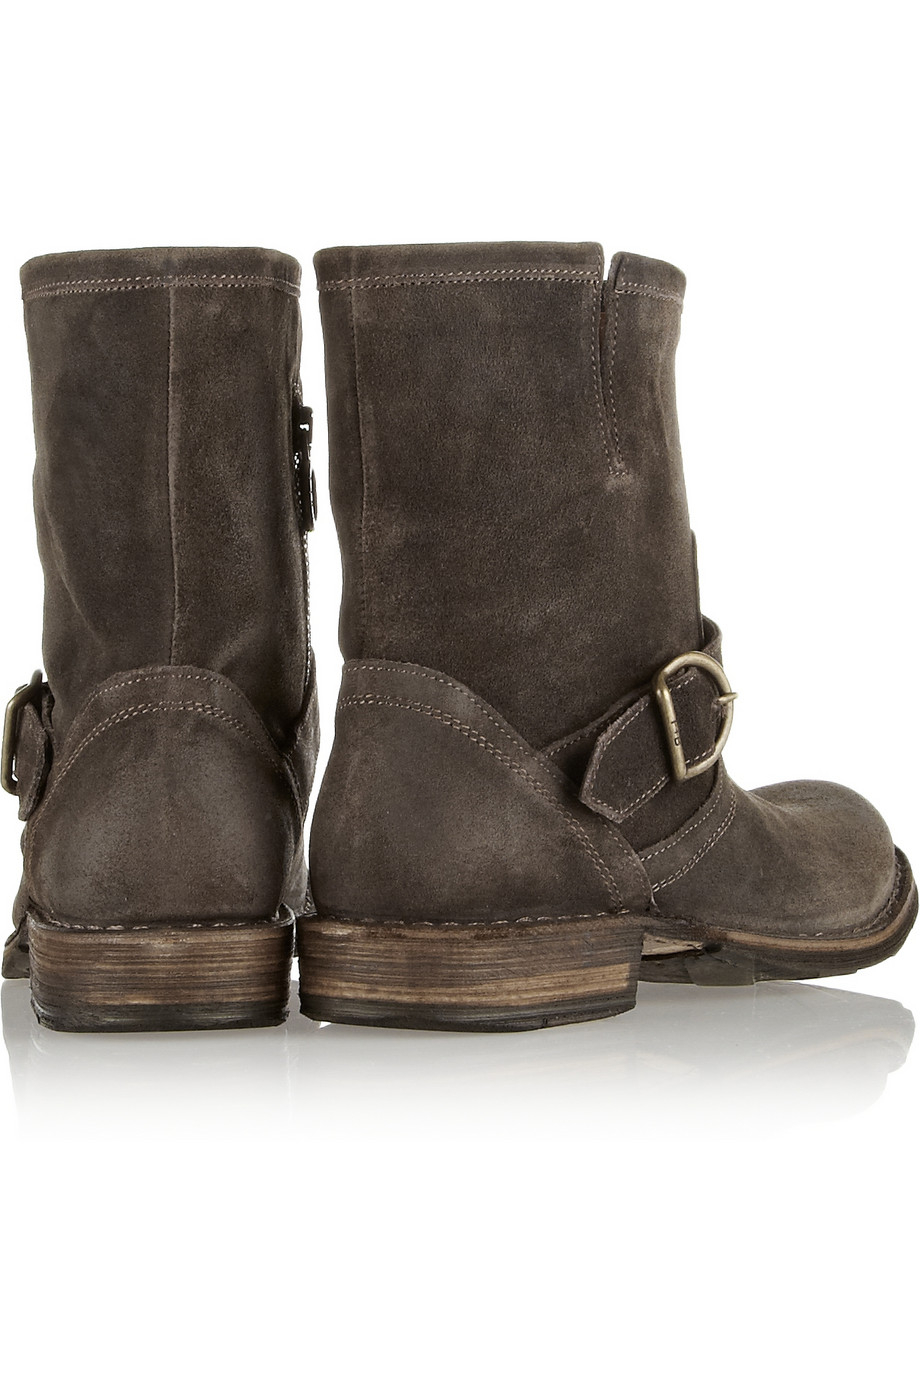 Fiore Shoes Brown